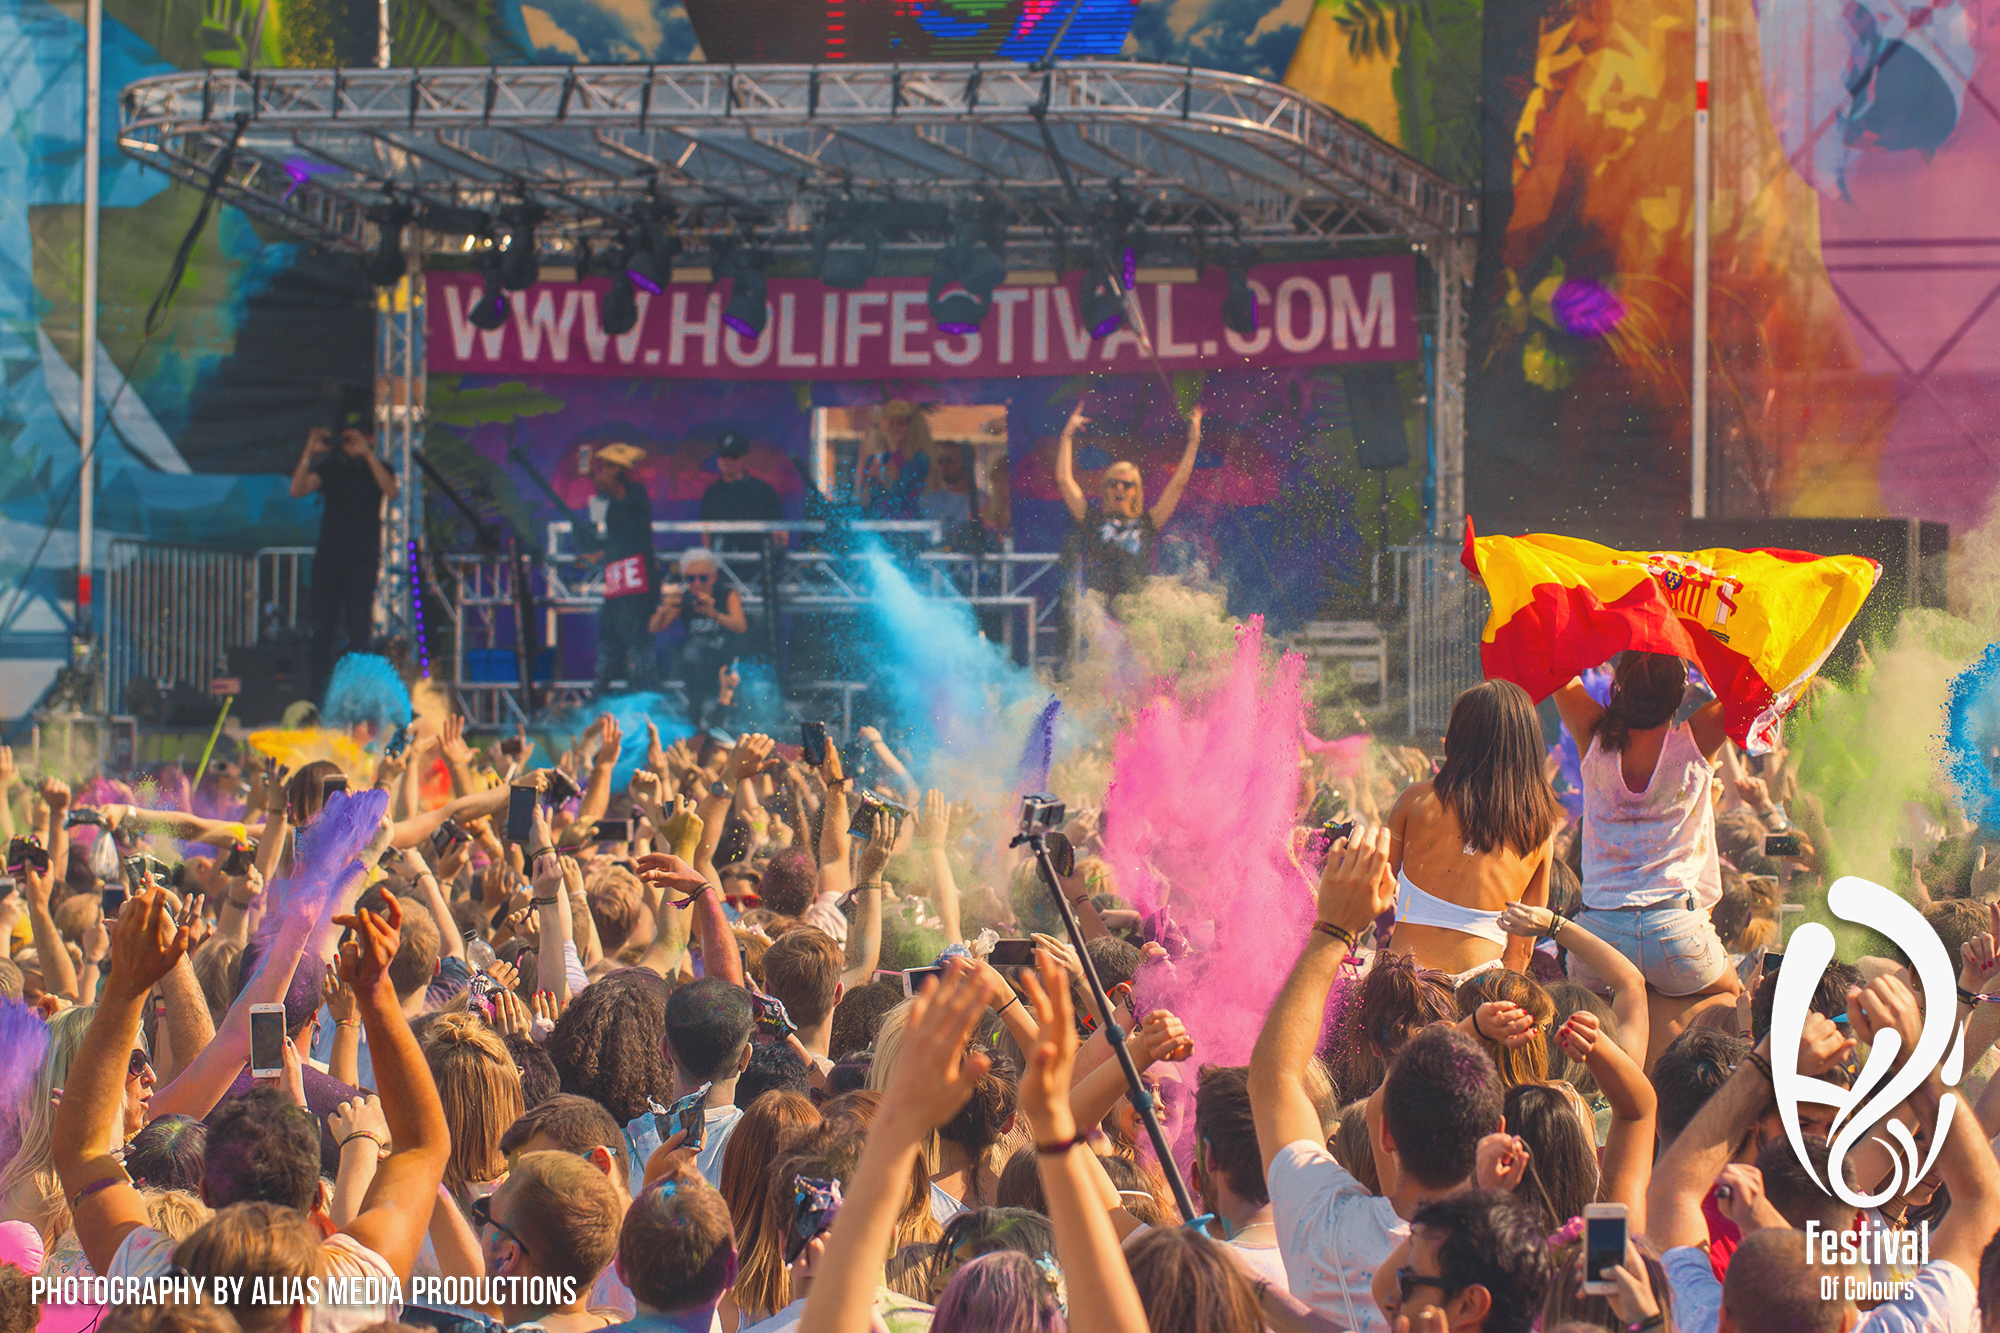 Holi festival photography by Alias Media Productions_7 copy